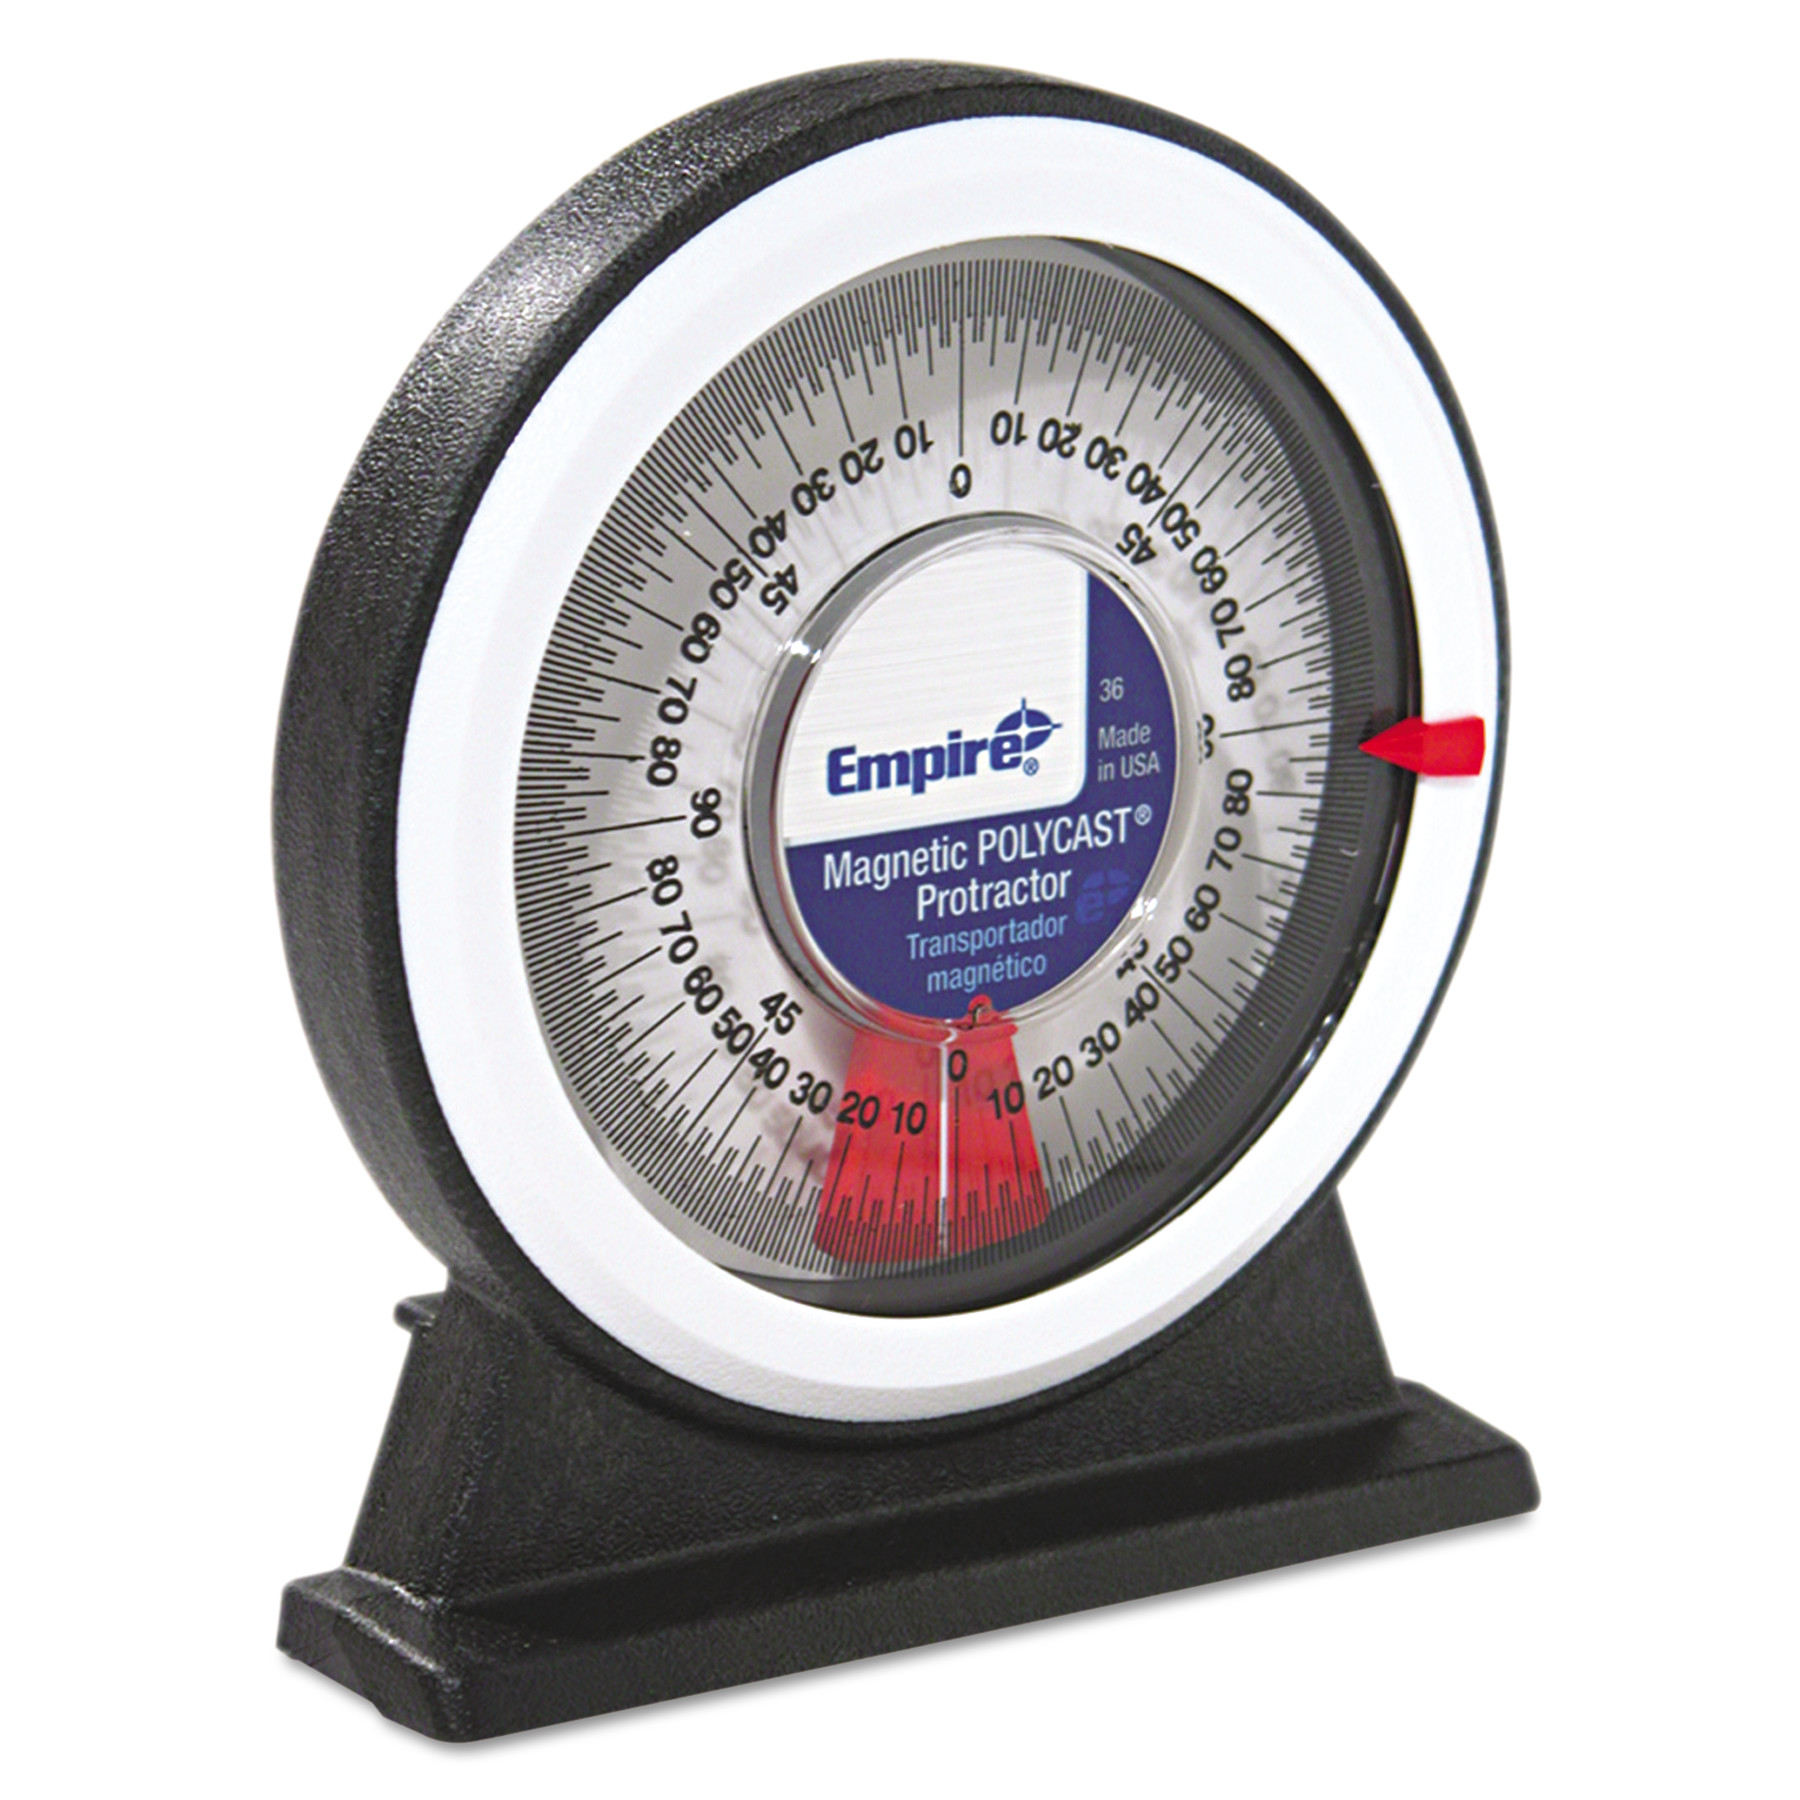 Empire Magnetic Polycast Angle Meter Protractor, 0 90°, 5w x 5 3/4h, Plastic